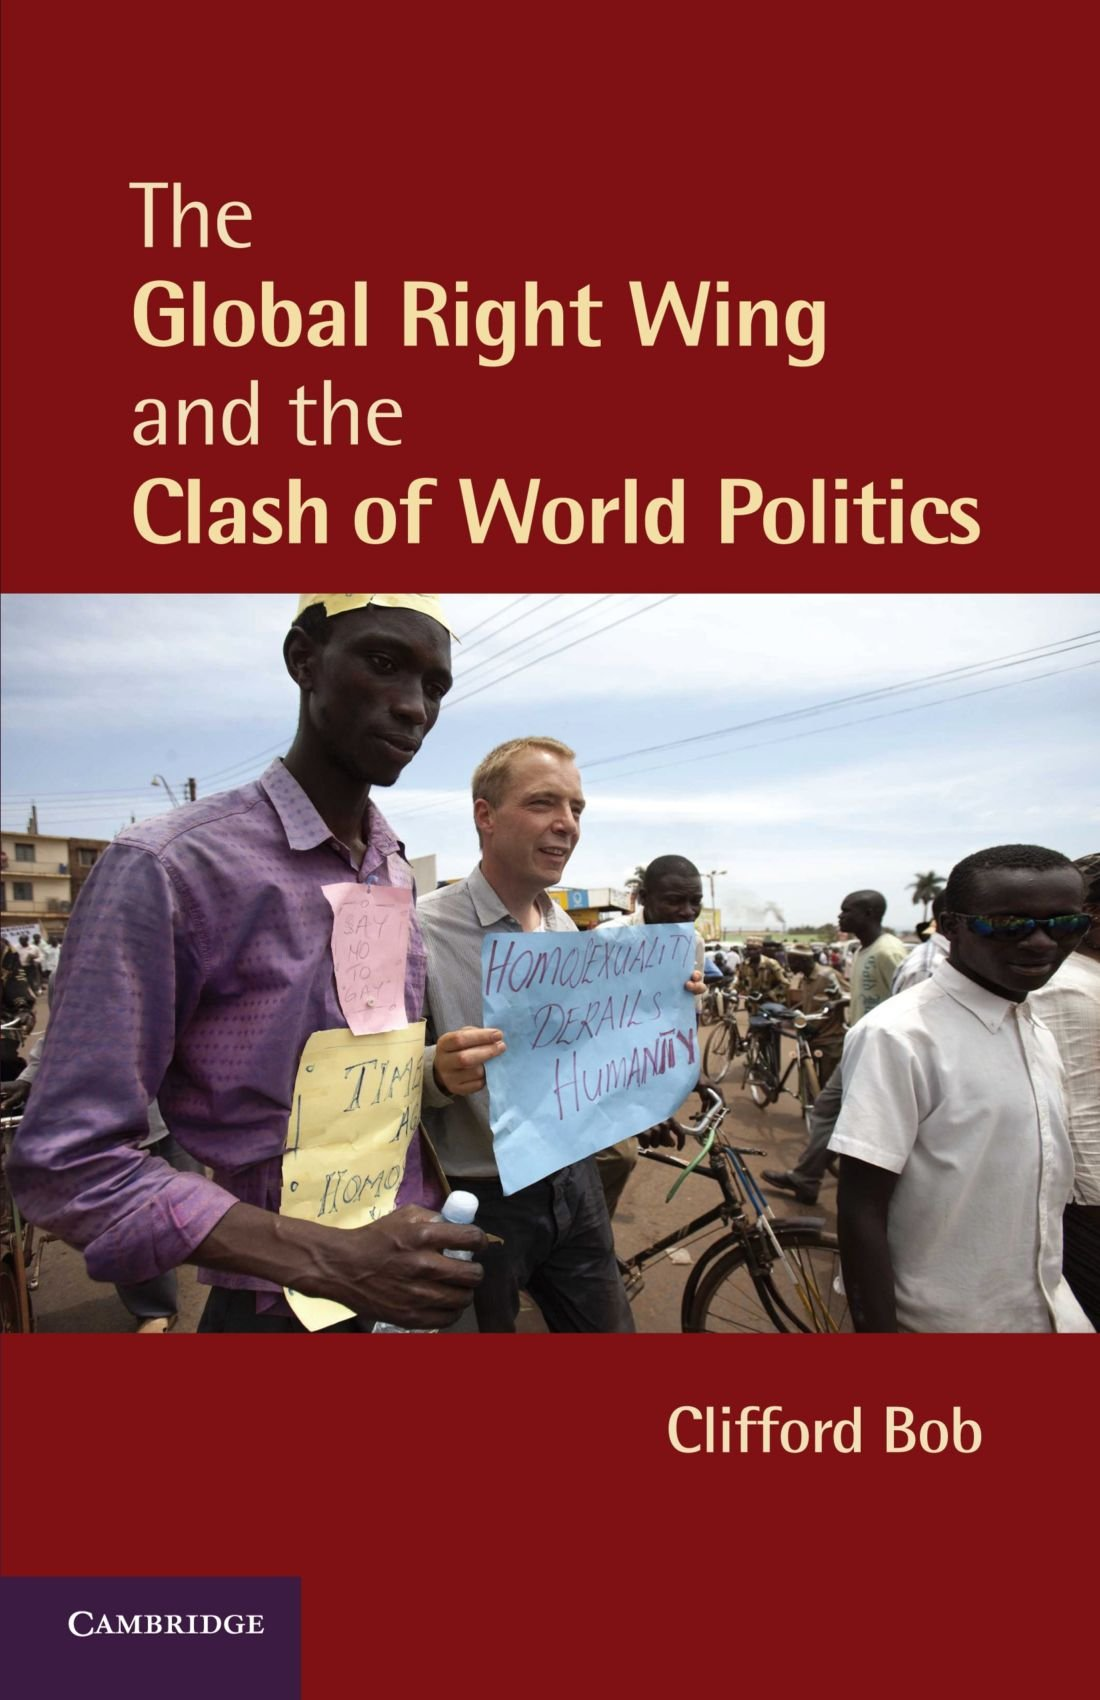 The global right wing and the clash of world politics, livro de Clifford Bob